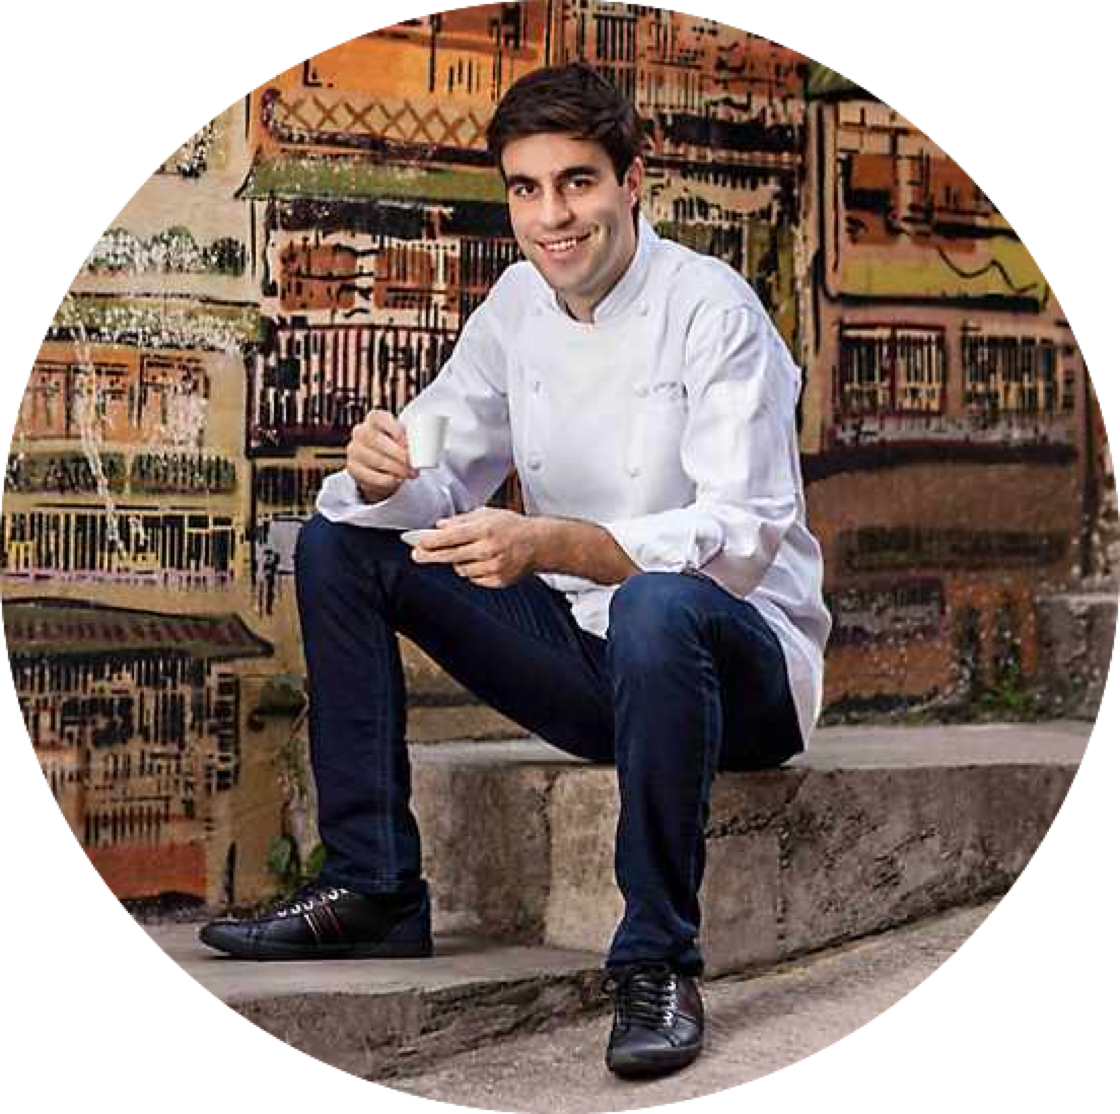 hong-kong-fine-dining-pierre-chef-jack-tauvry-02.png